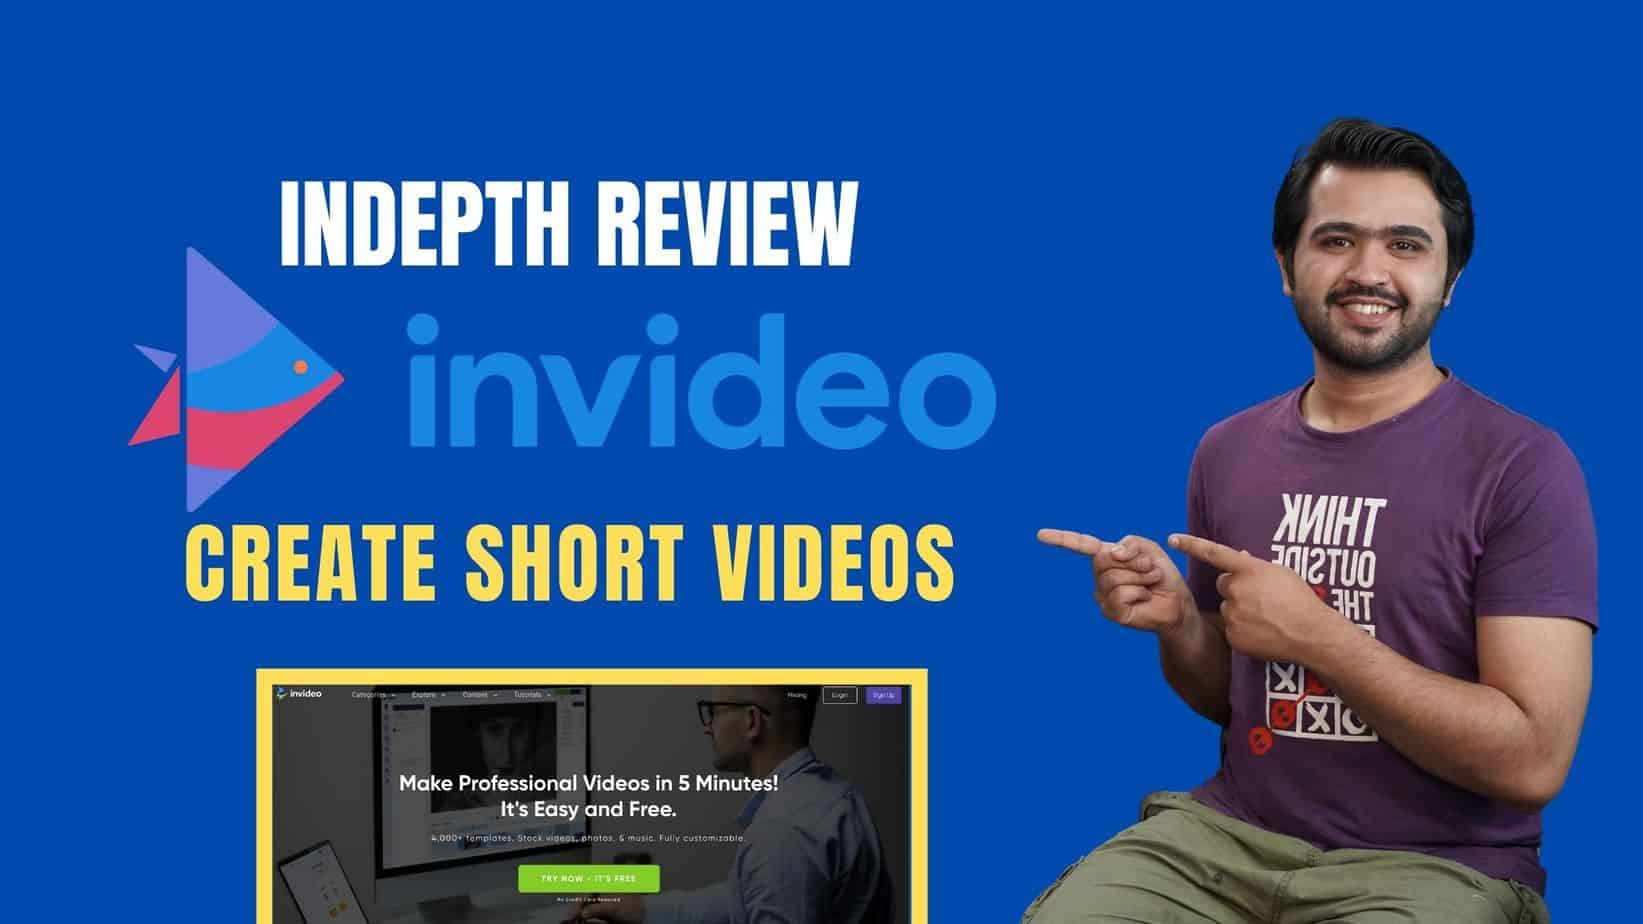 INVIDEO INDEPTH REVIEW